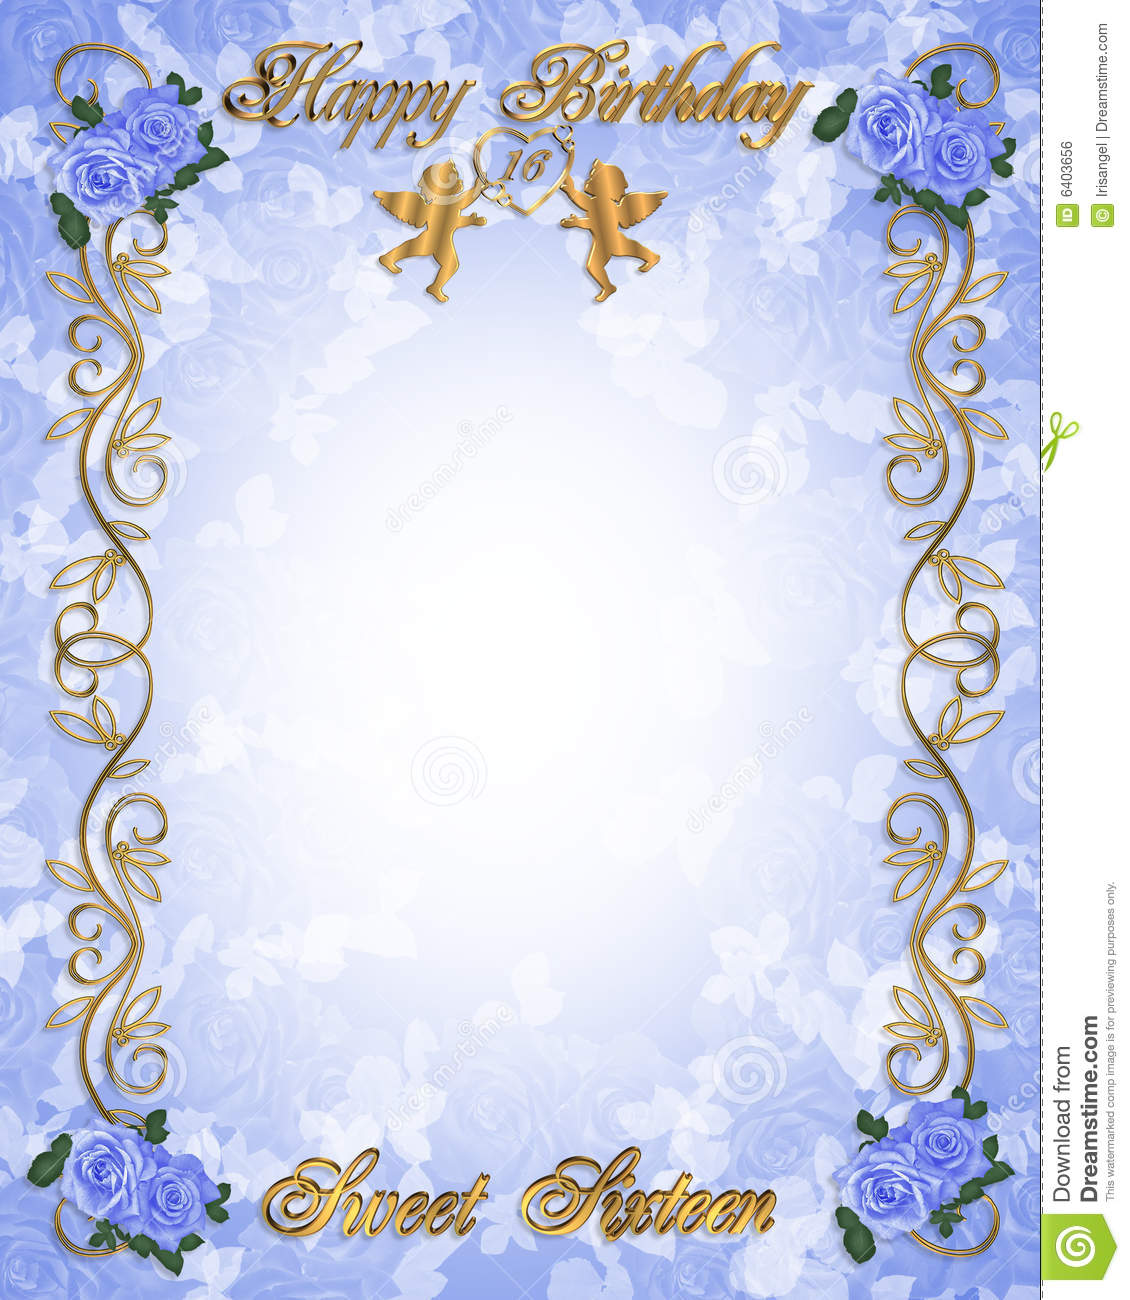 birthday invitation sweet 16 blue stock illustration